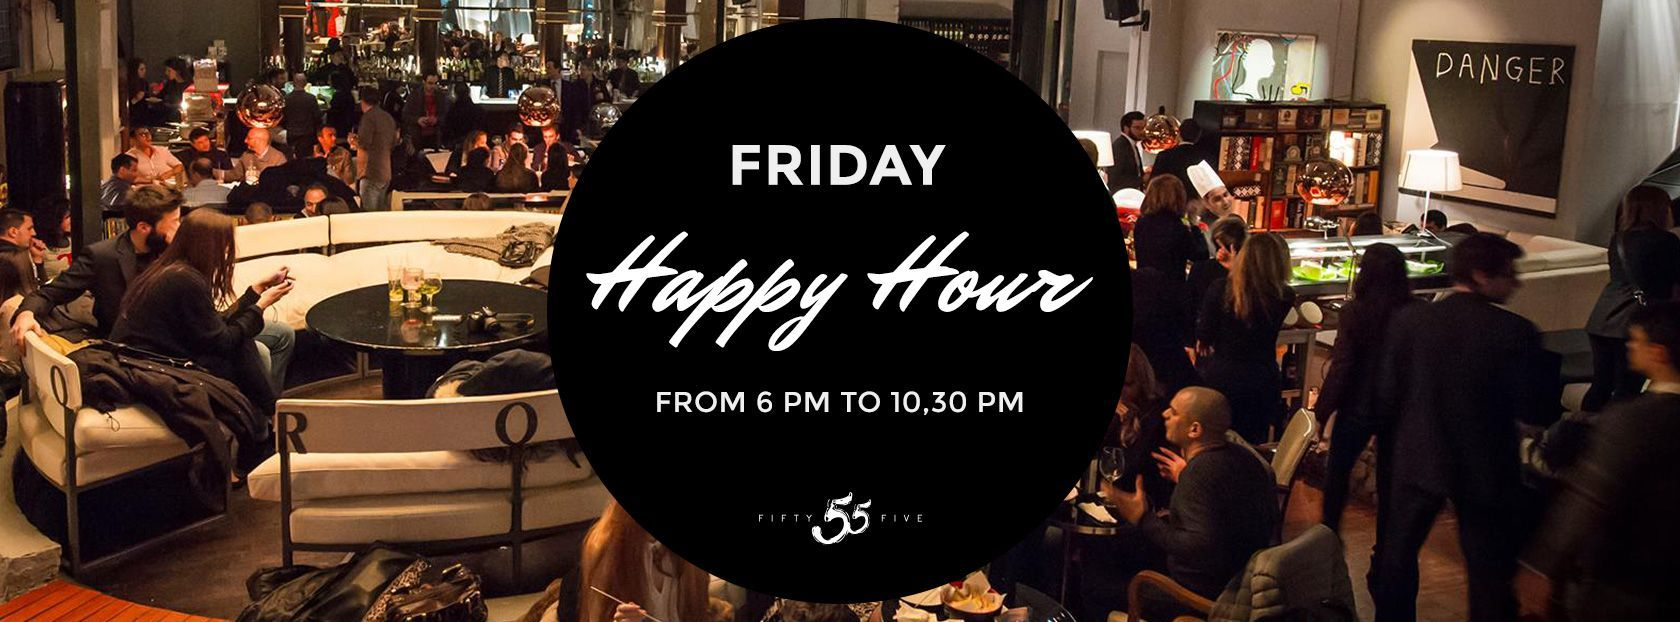 Friday - Happy Hour